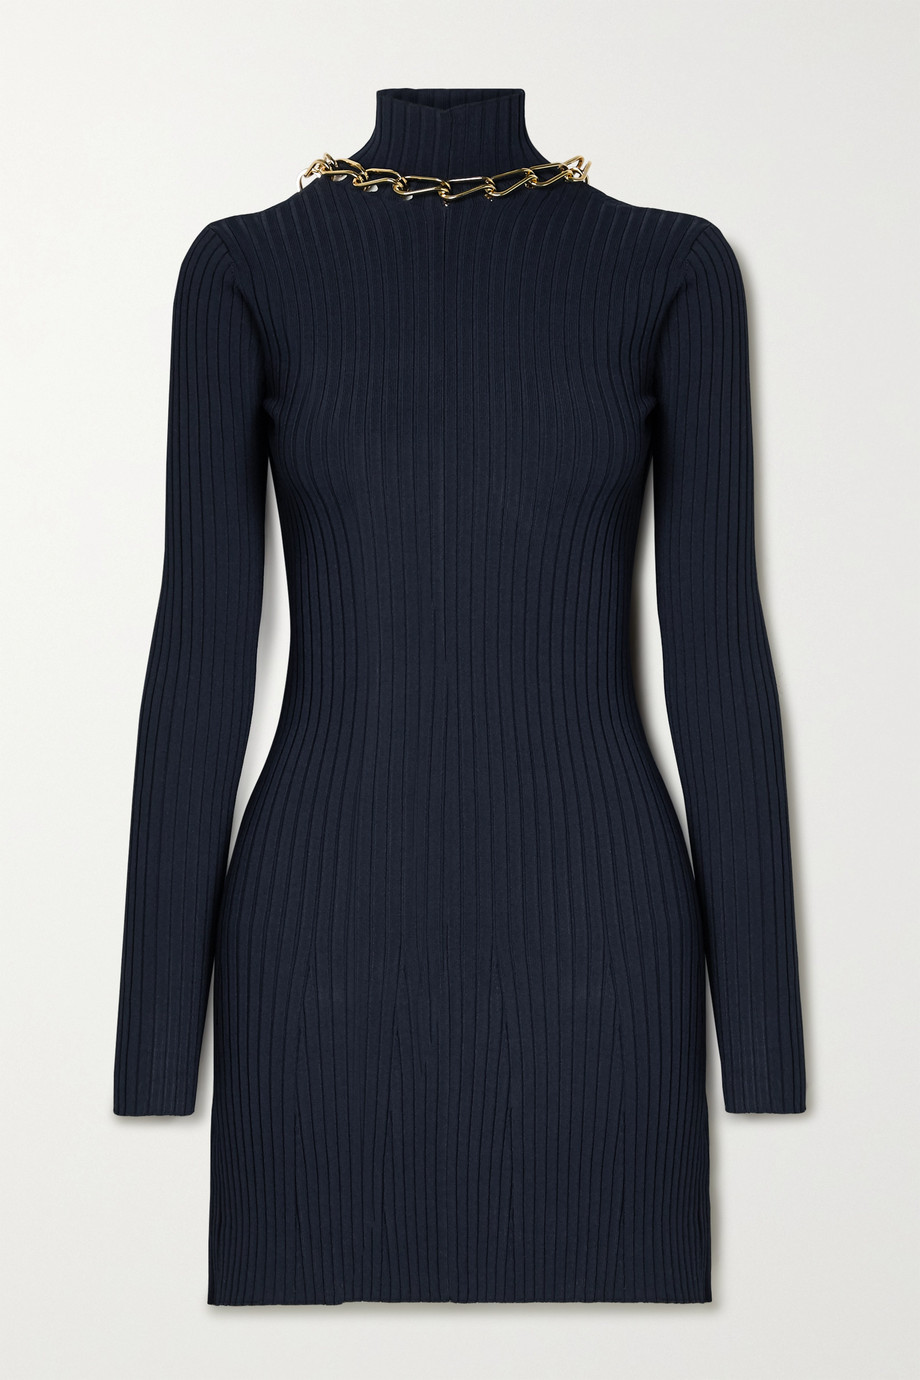 Dion Lee Chain-embellished open-back ribbed-knit mini dress